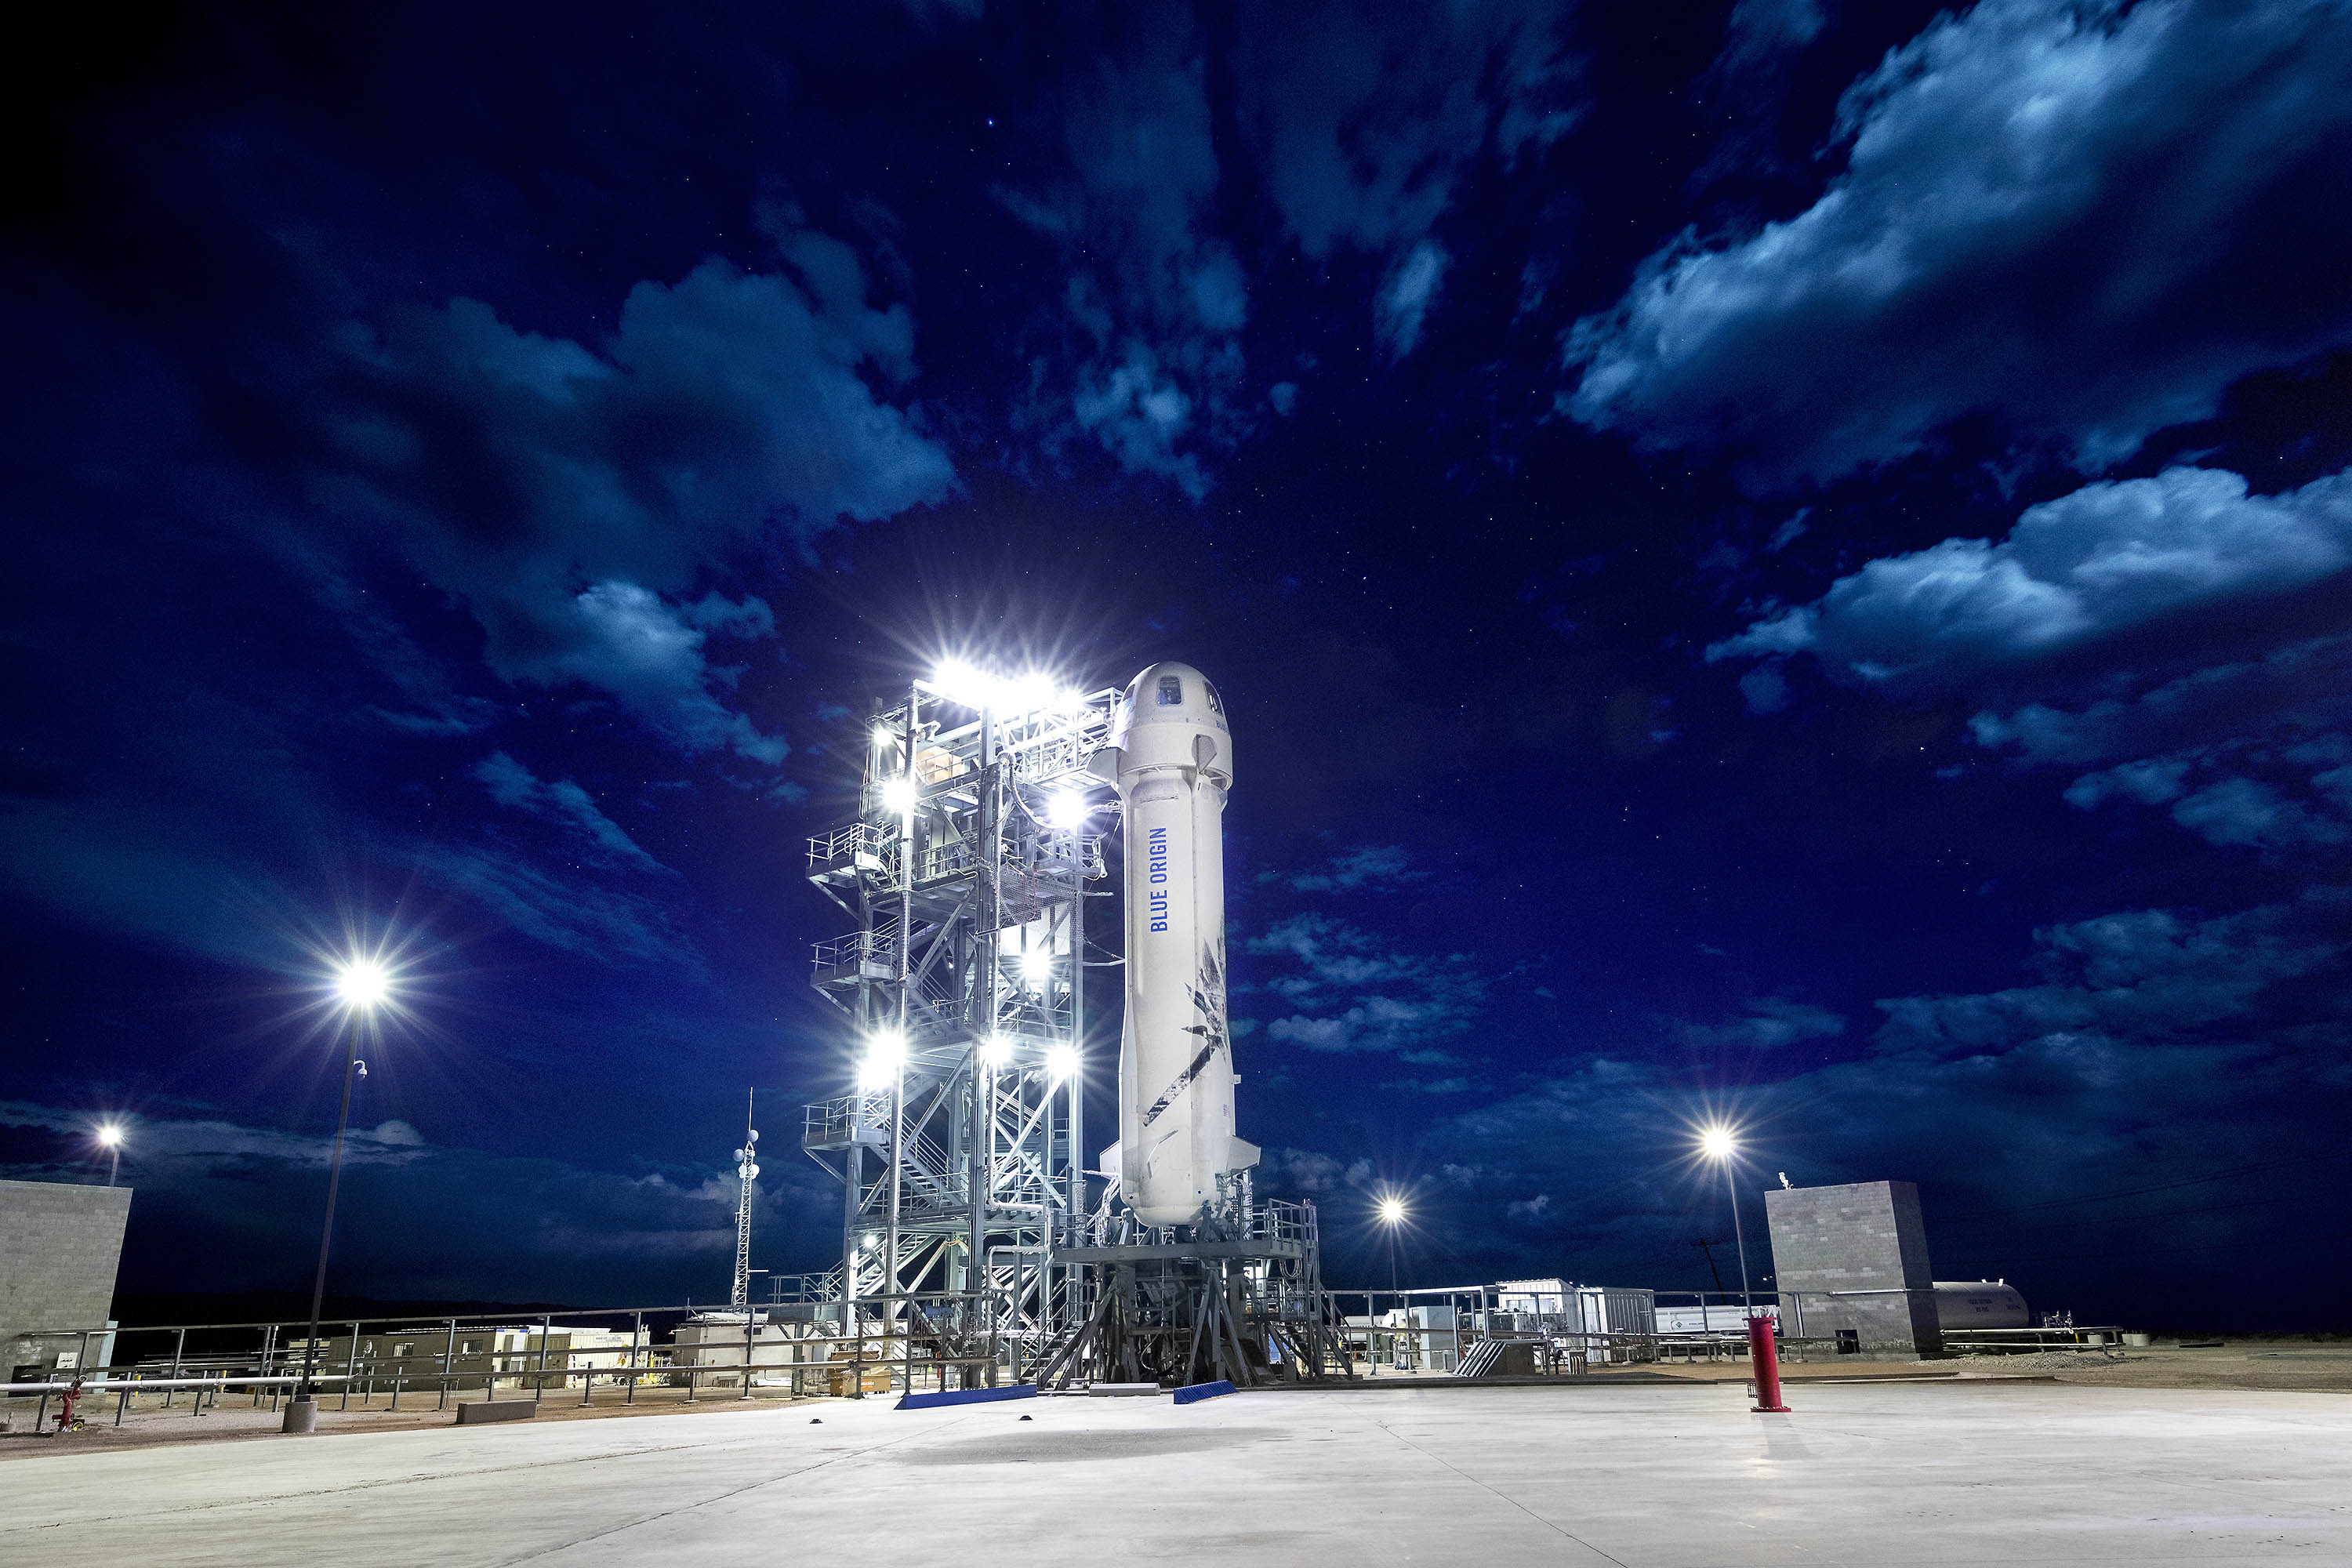 BlueOrigin_NewShepard_M8_MorningOnLaunchPad